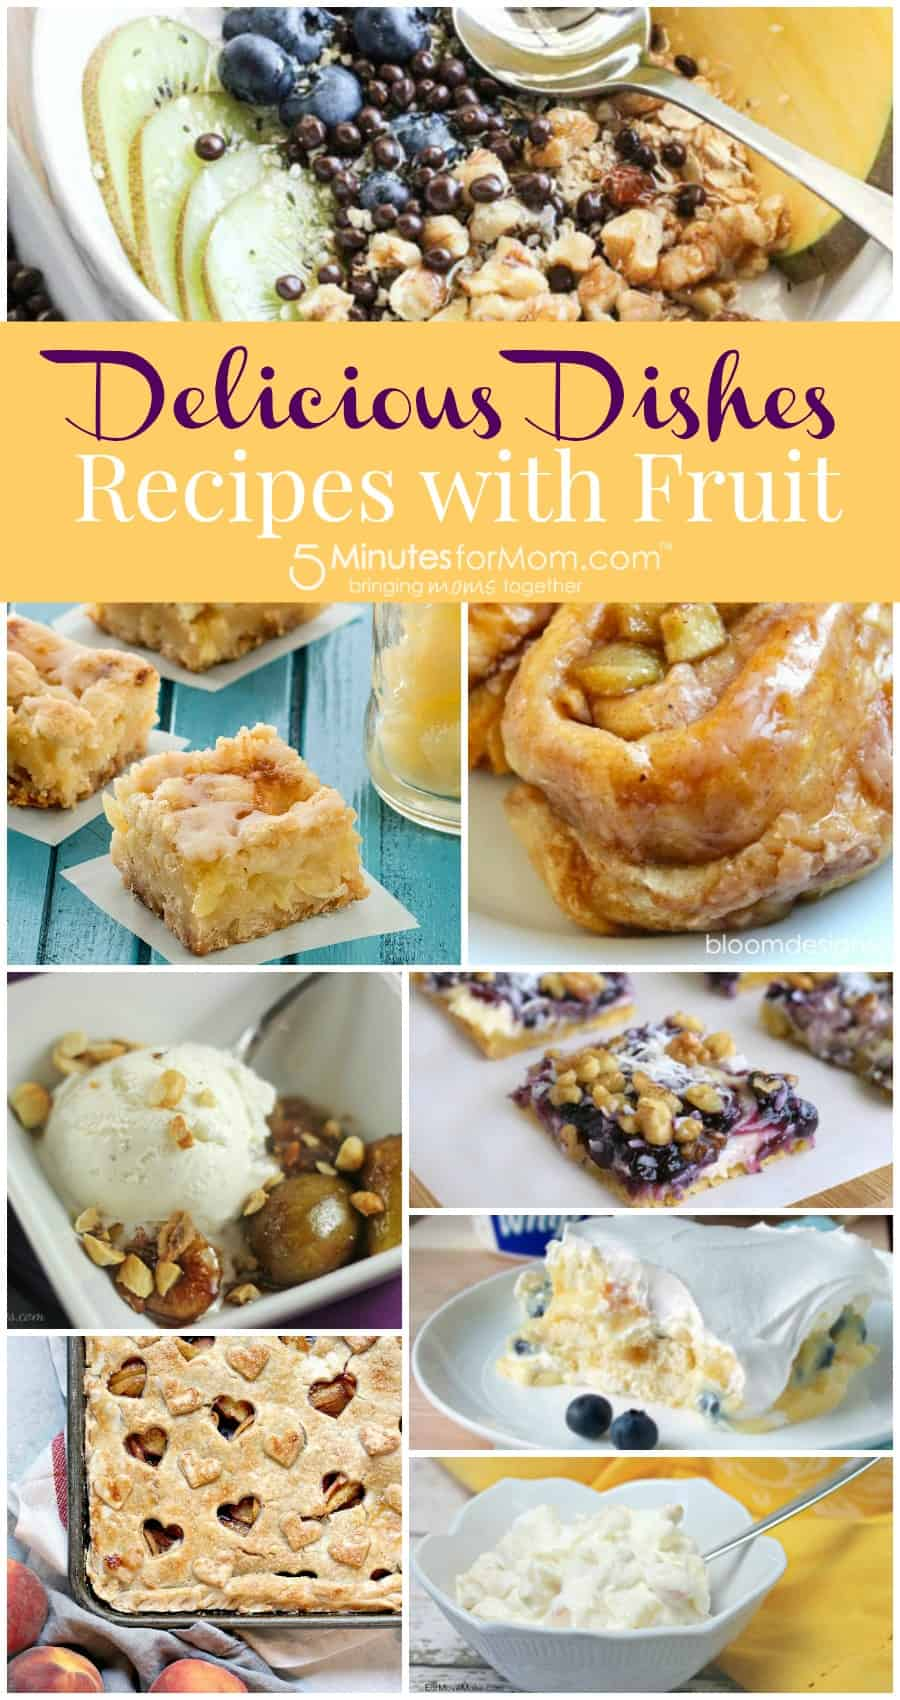 Delicious Dishes - Recipes with fruit